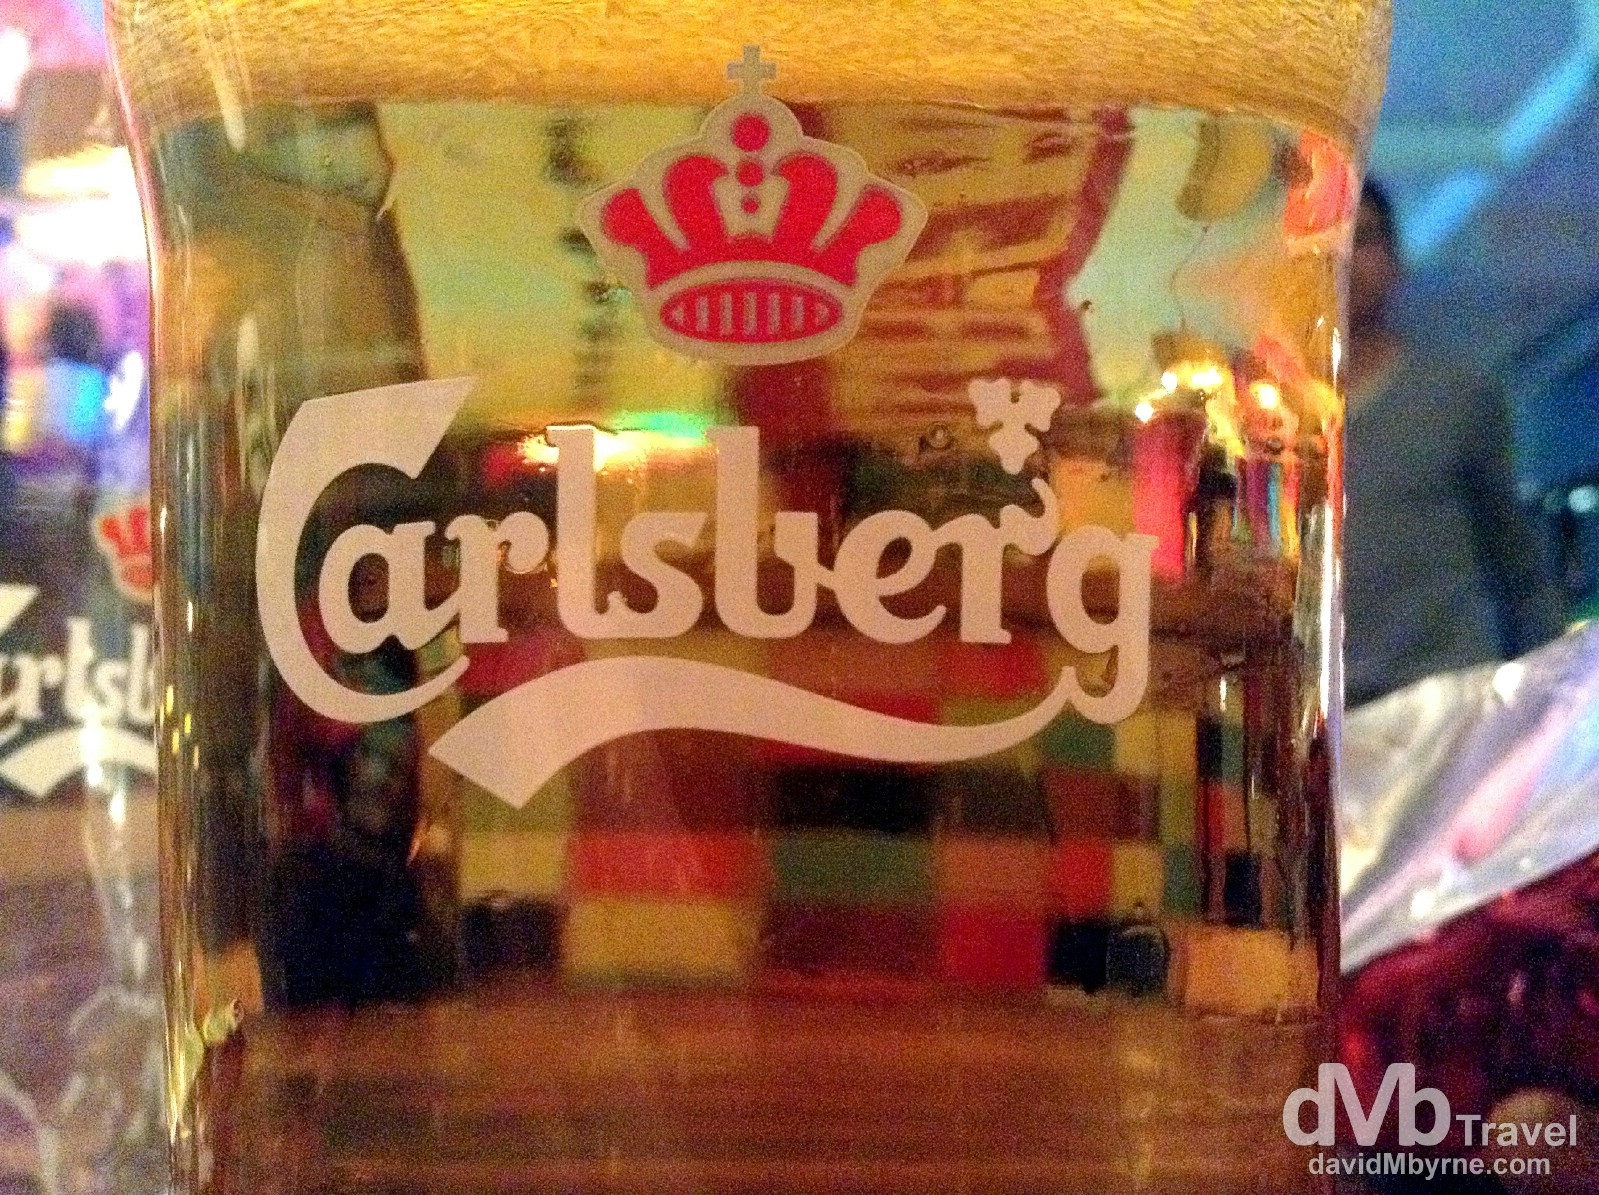 Carlsberg in Copenhagen Downtown Hostel, Copenhagen, Denmark. March 12th, 2014 (iPod Touch v5)